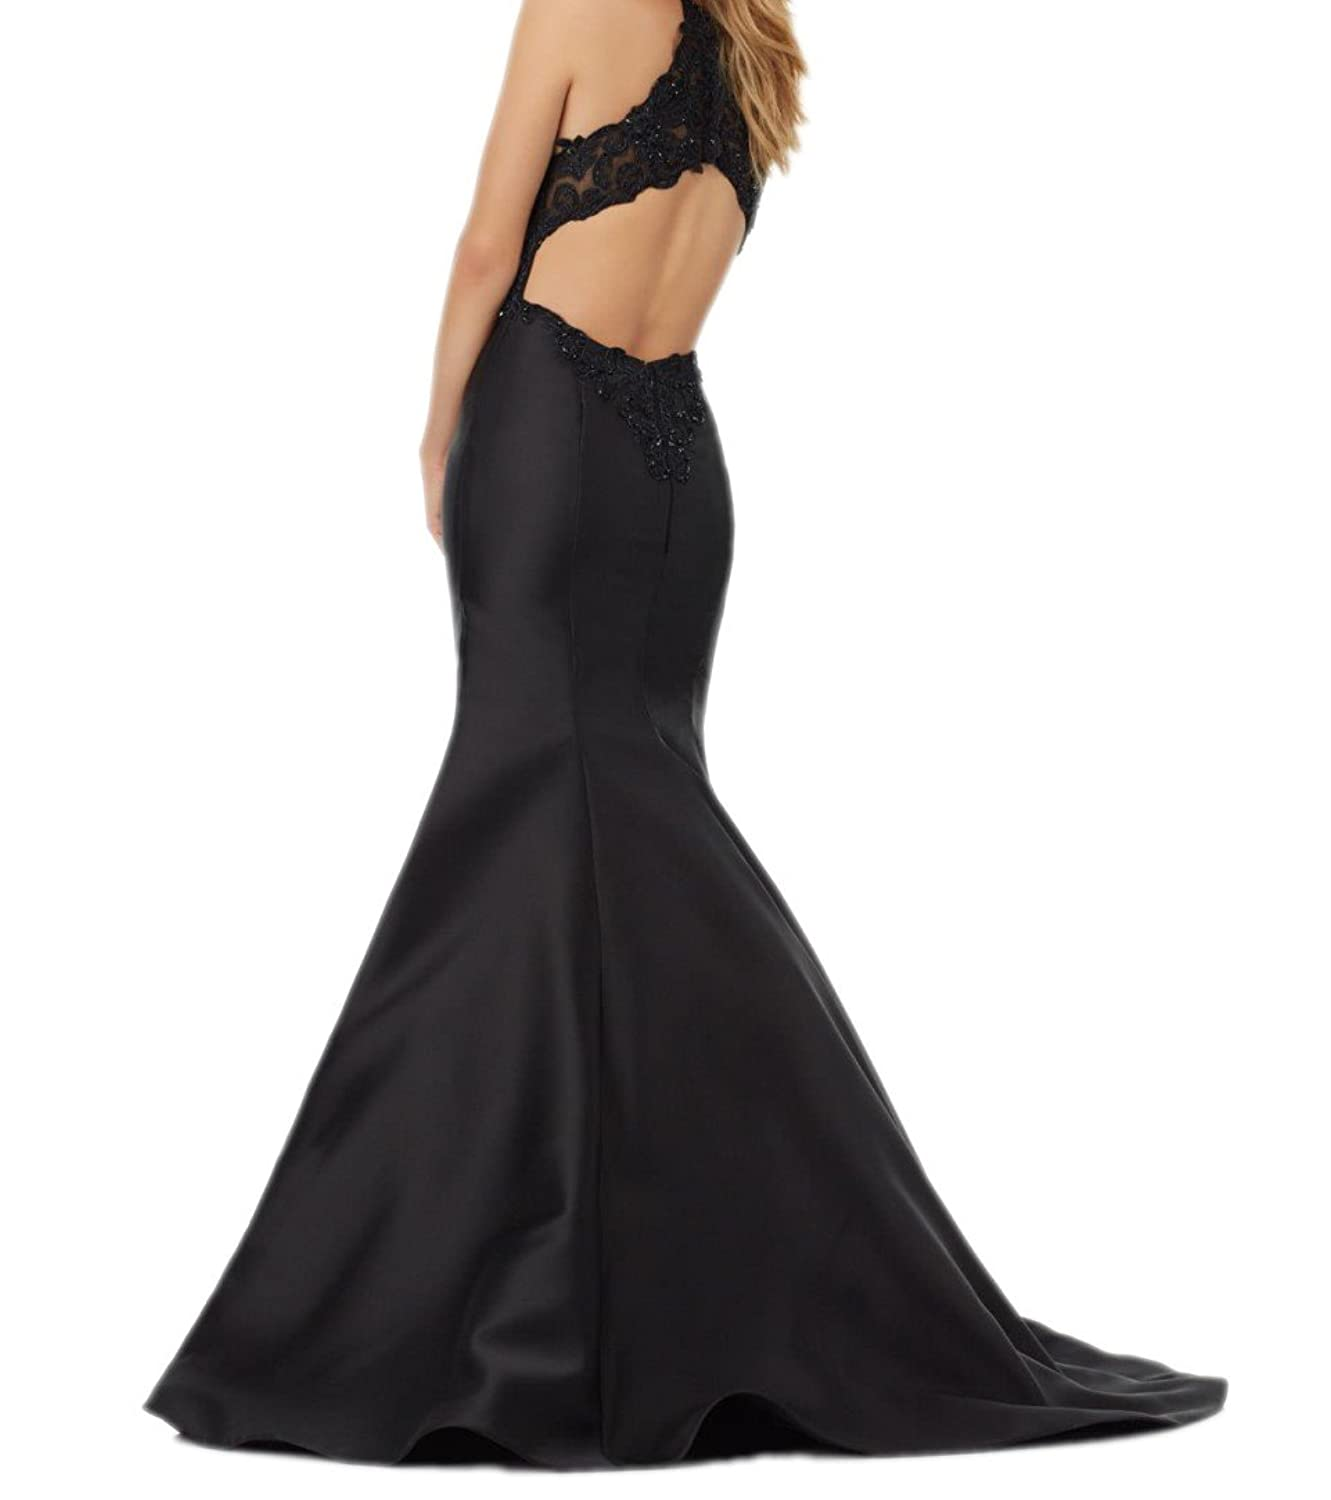 Long prom dresses with sleeves ukm